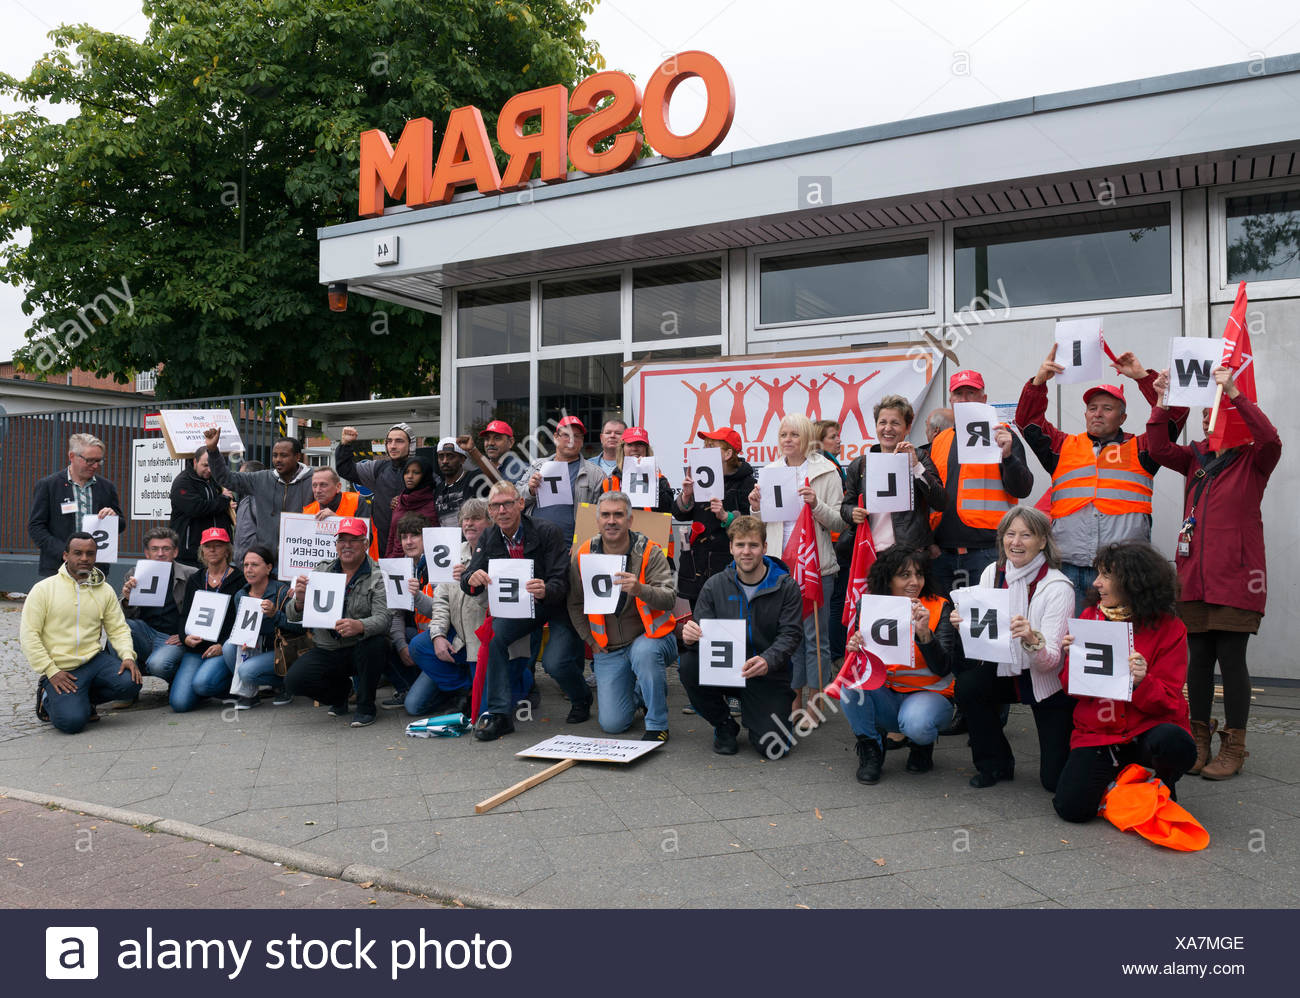 Berlin, Germany, Osram Pursuing protest against the planned reduction of 283 positions - Stock Image